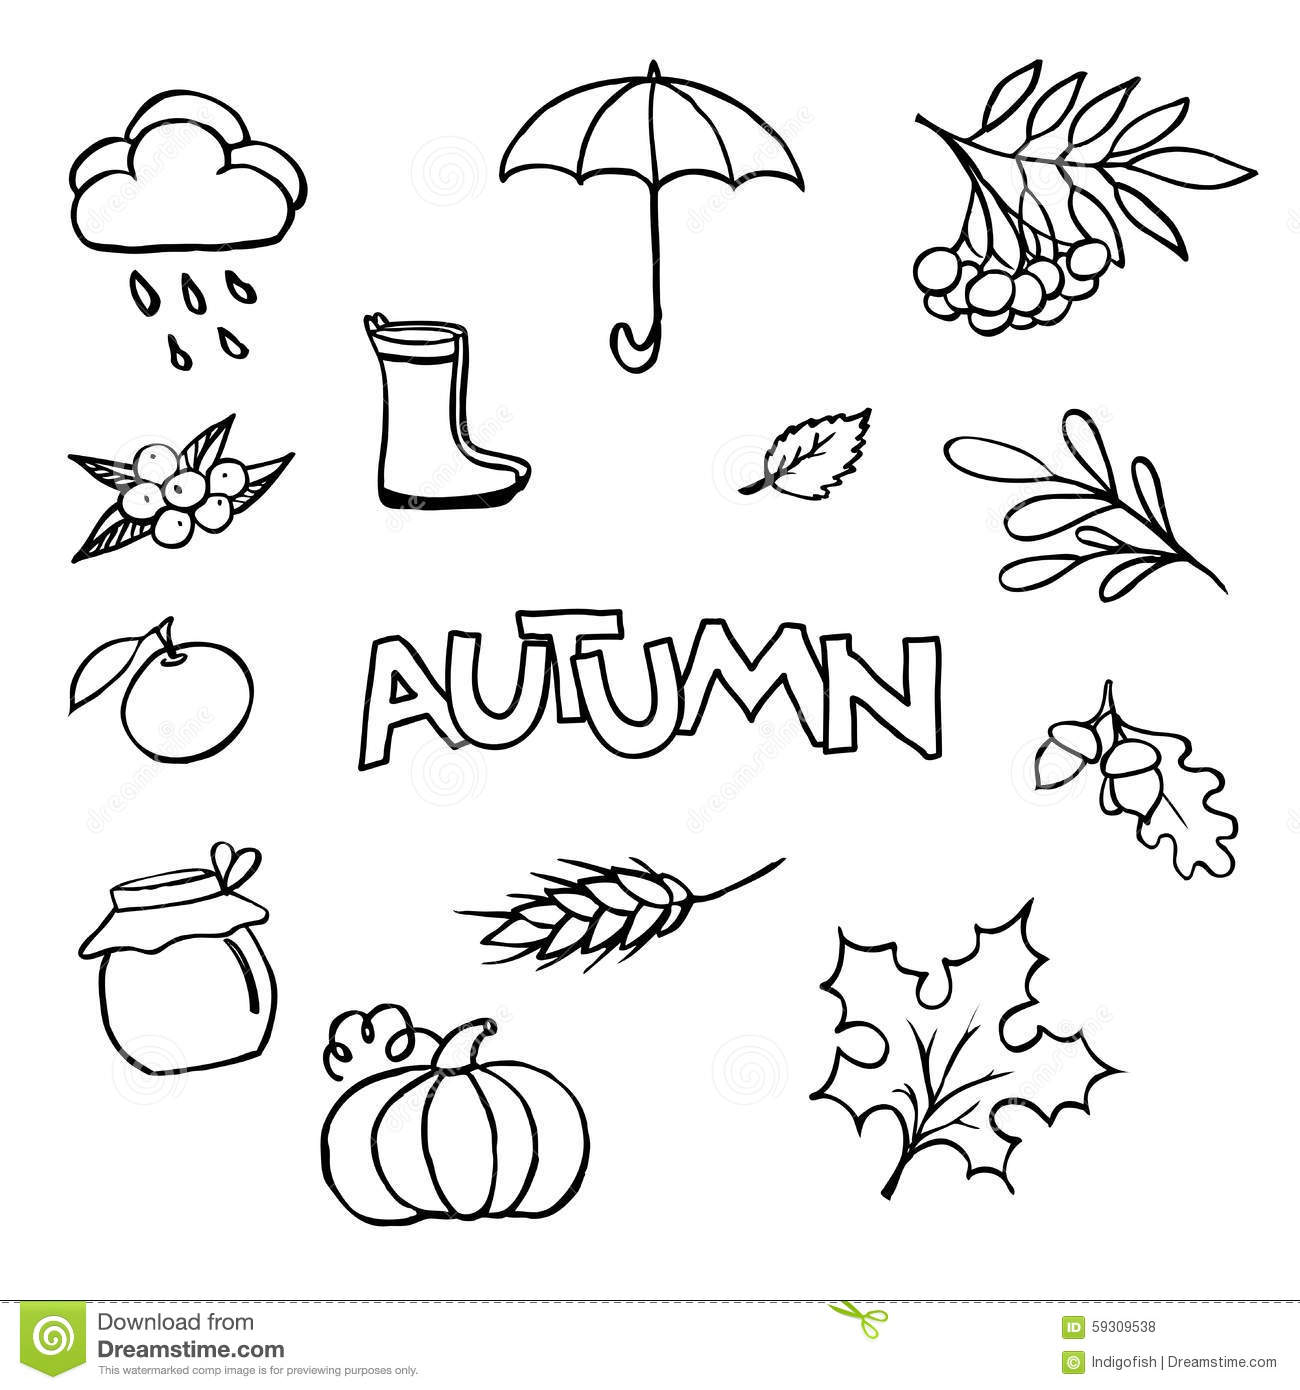 Sketchy Vector Hand Drawn Doodle Cartoon Set Of Objects On